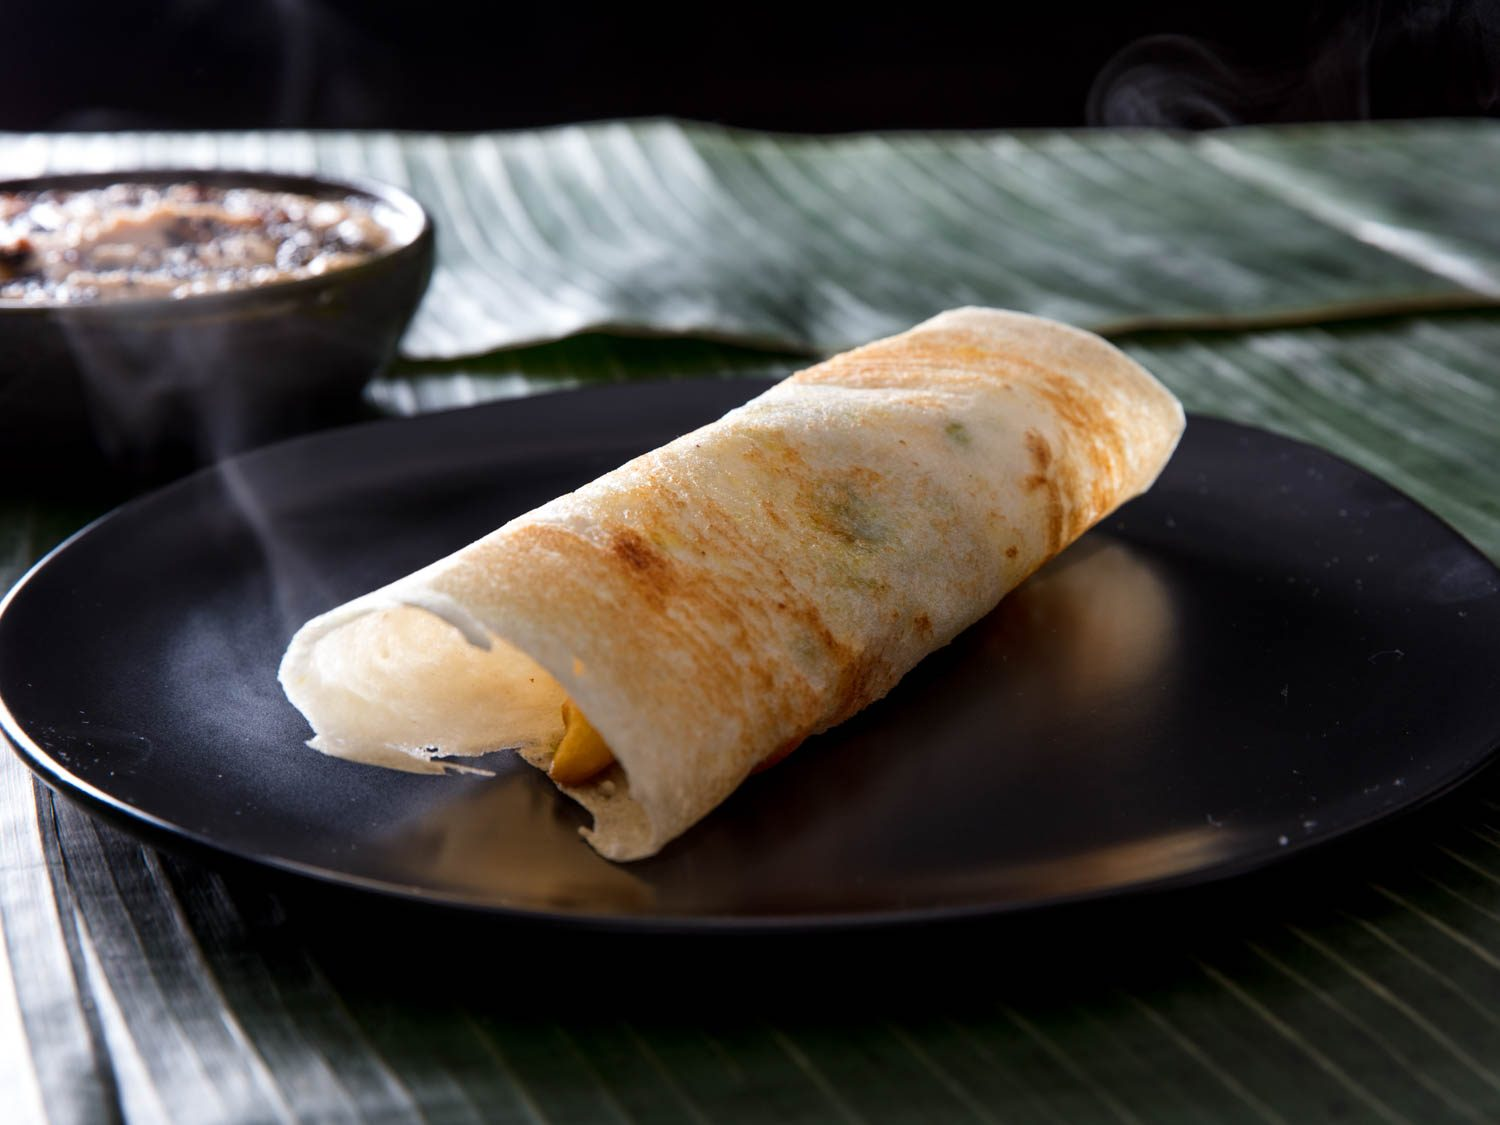 Masala Dosa (Potato-Filled Rice-and-Lentil Crepe)